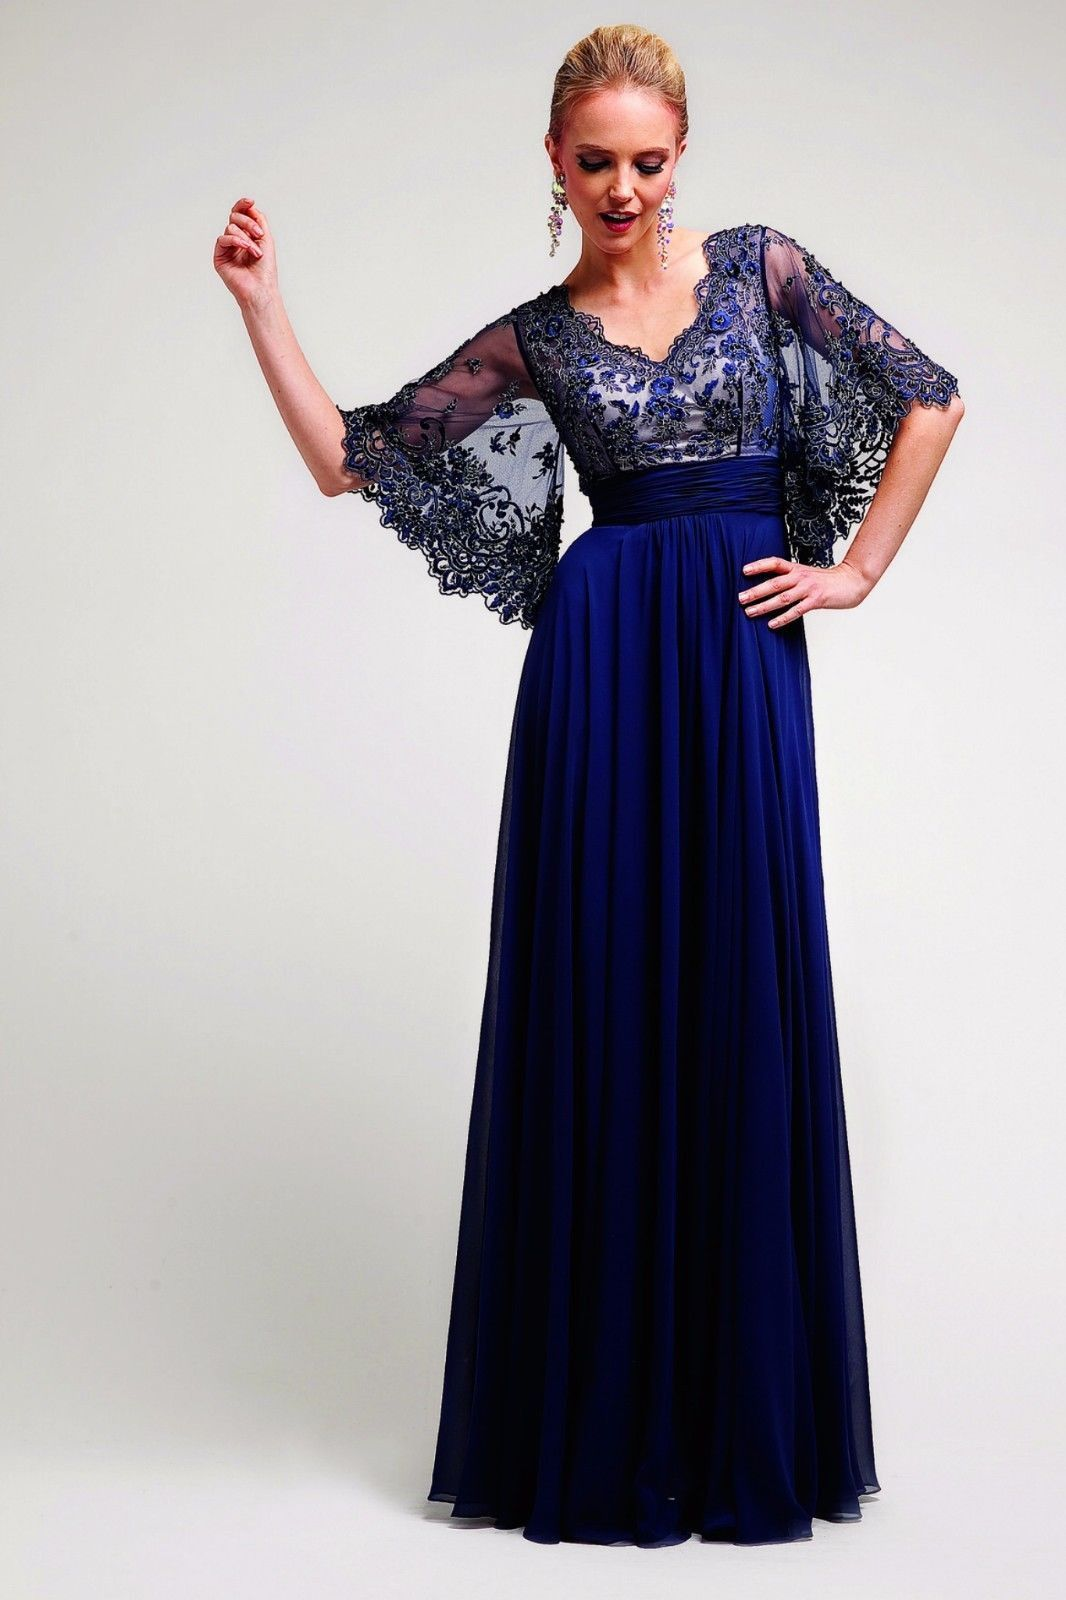 An Elegant Long Formal Gown With Gorgeous Kimono Sleeves